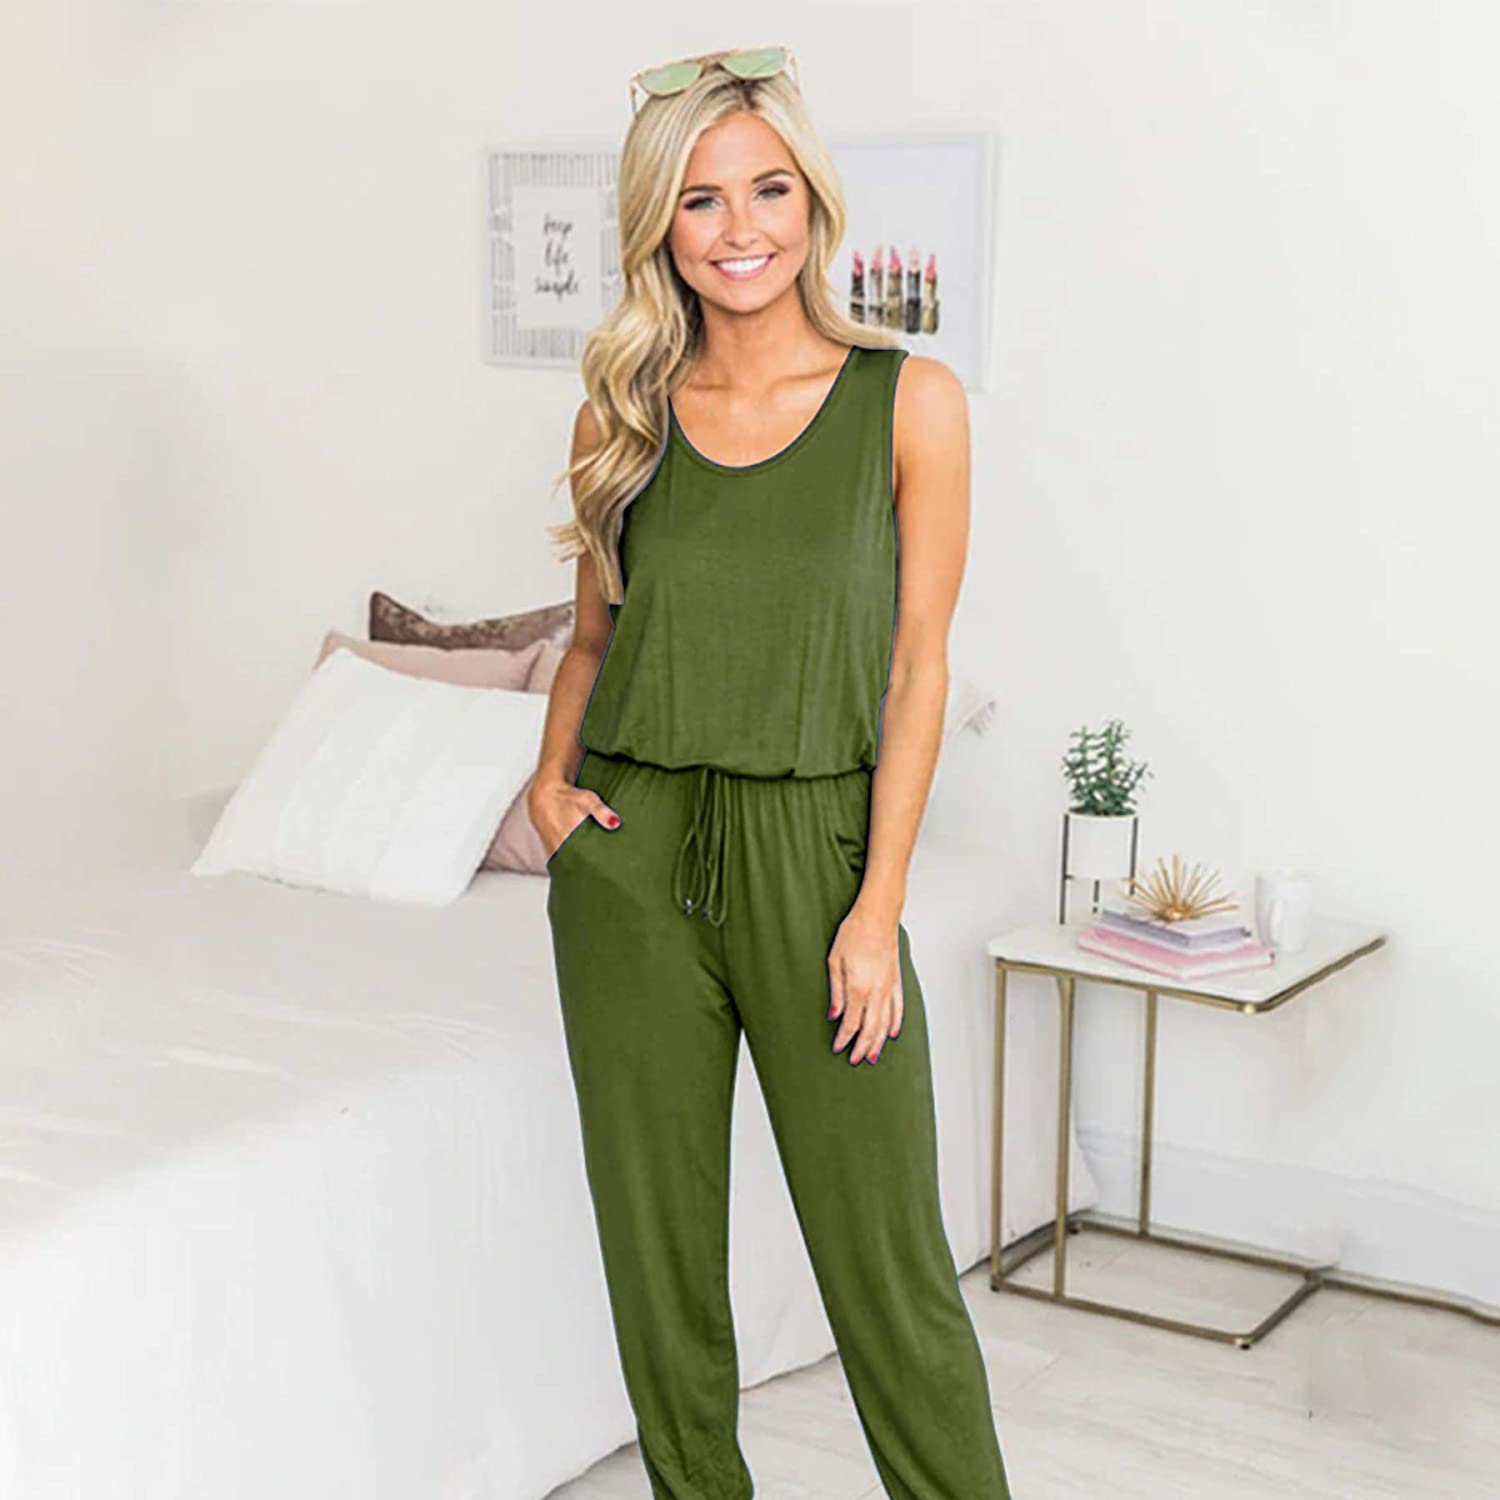 HOYMN Jumpsuits Romper for Women Sleeveless Casual V Neck One Piece High Waist Long Overalls Elegant Romper with Pockets